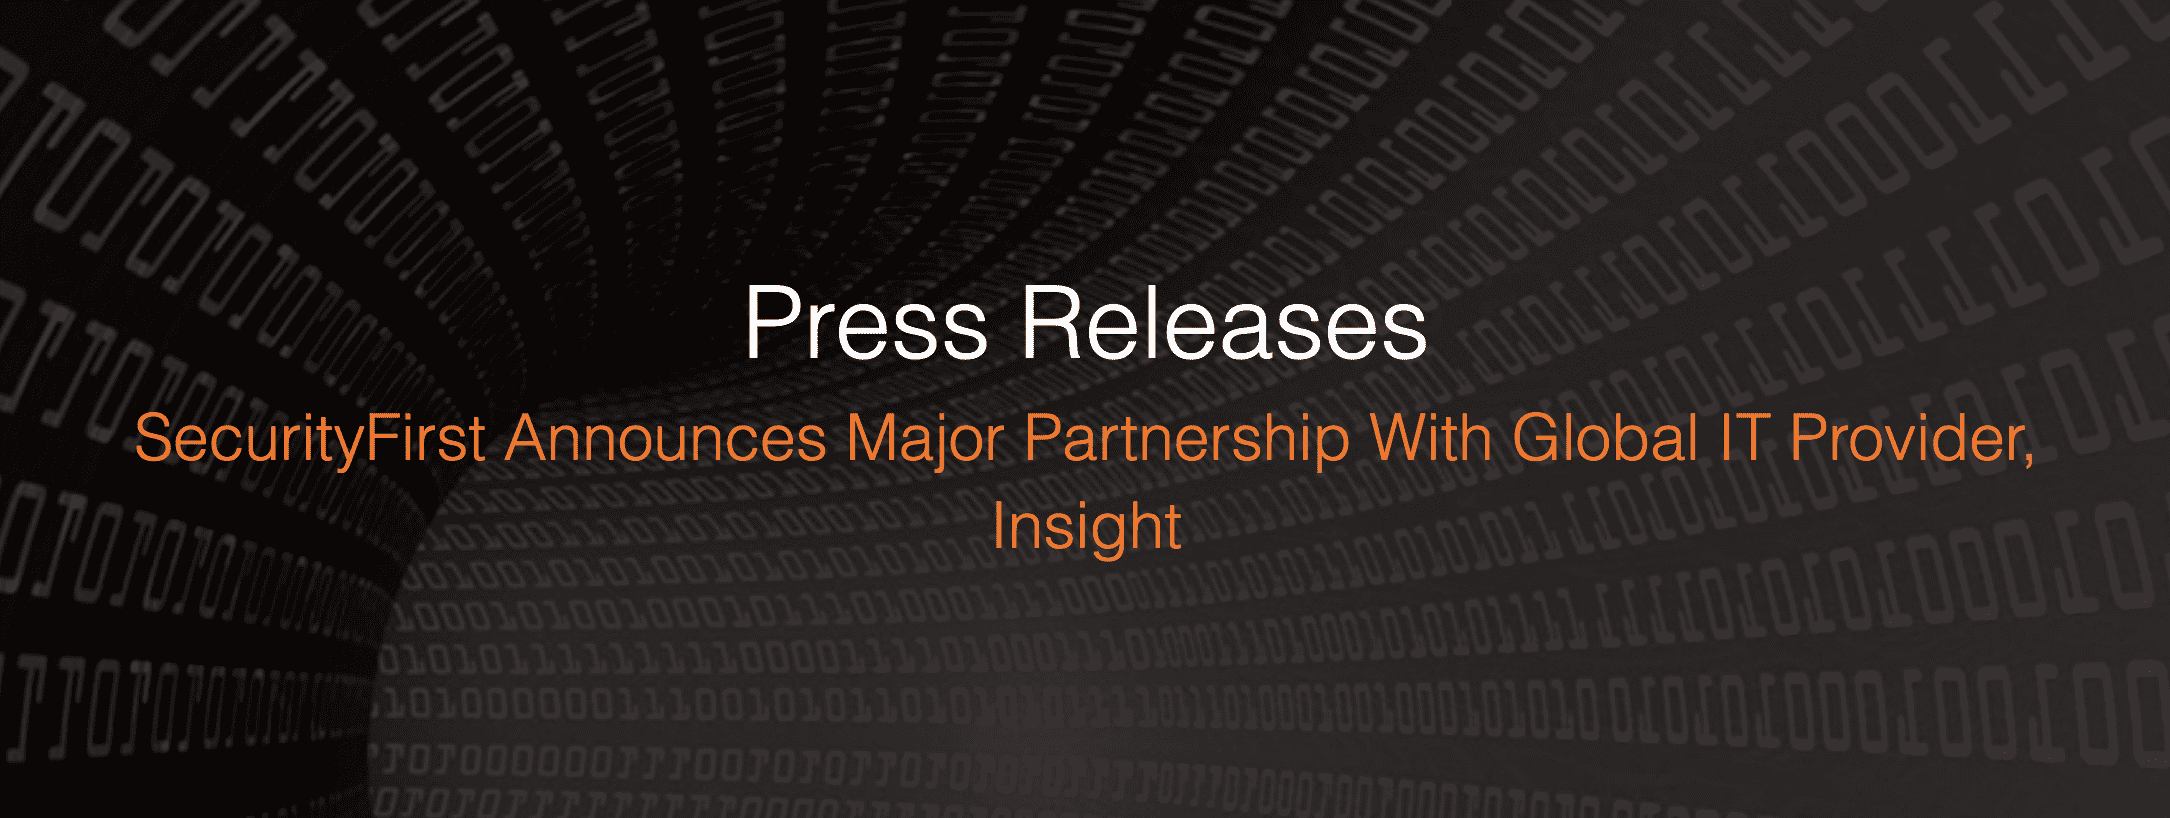 Security First Announces Major Partnership with Global IT Provider, Insight Enterprises.